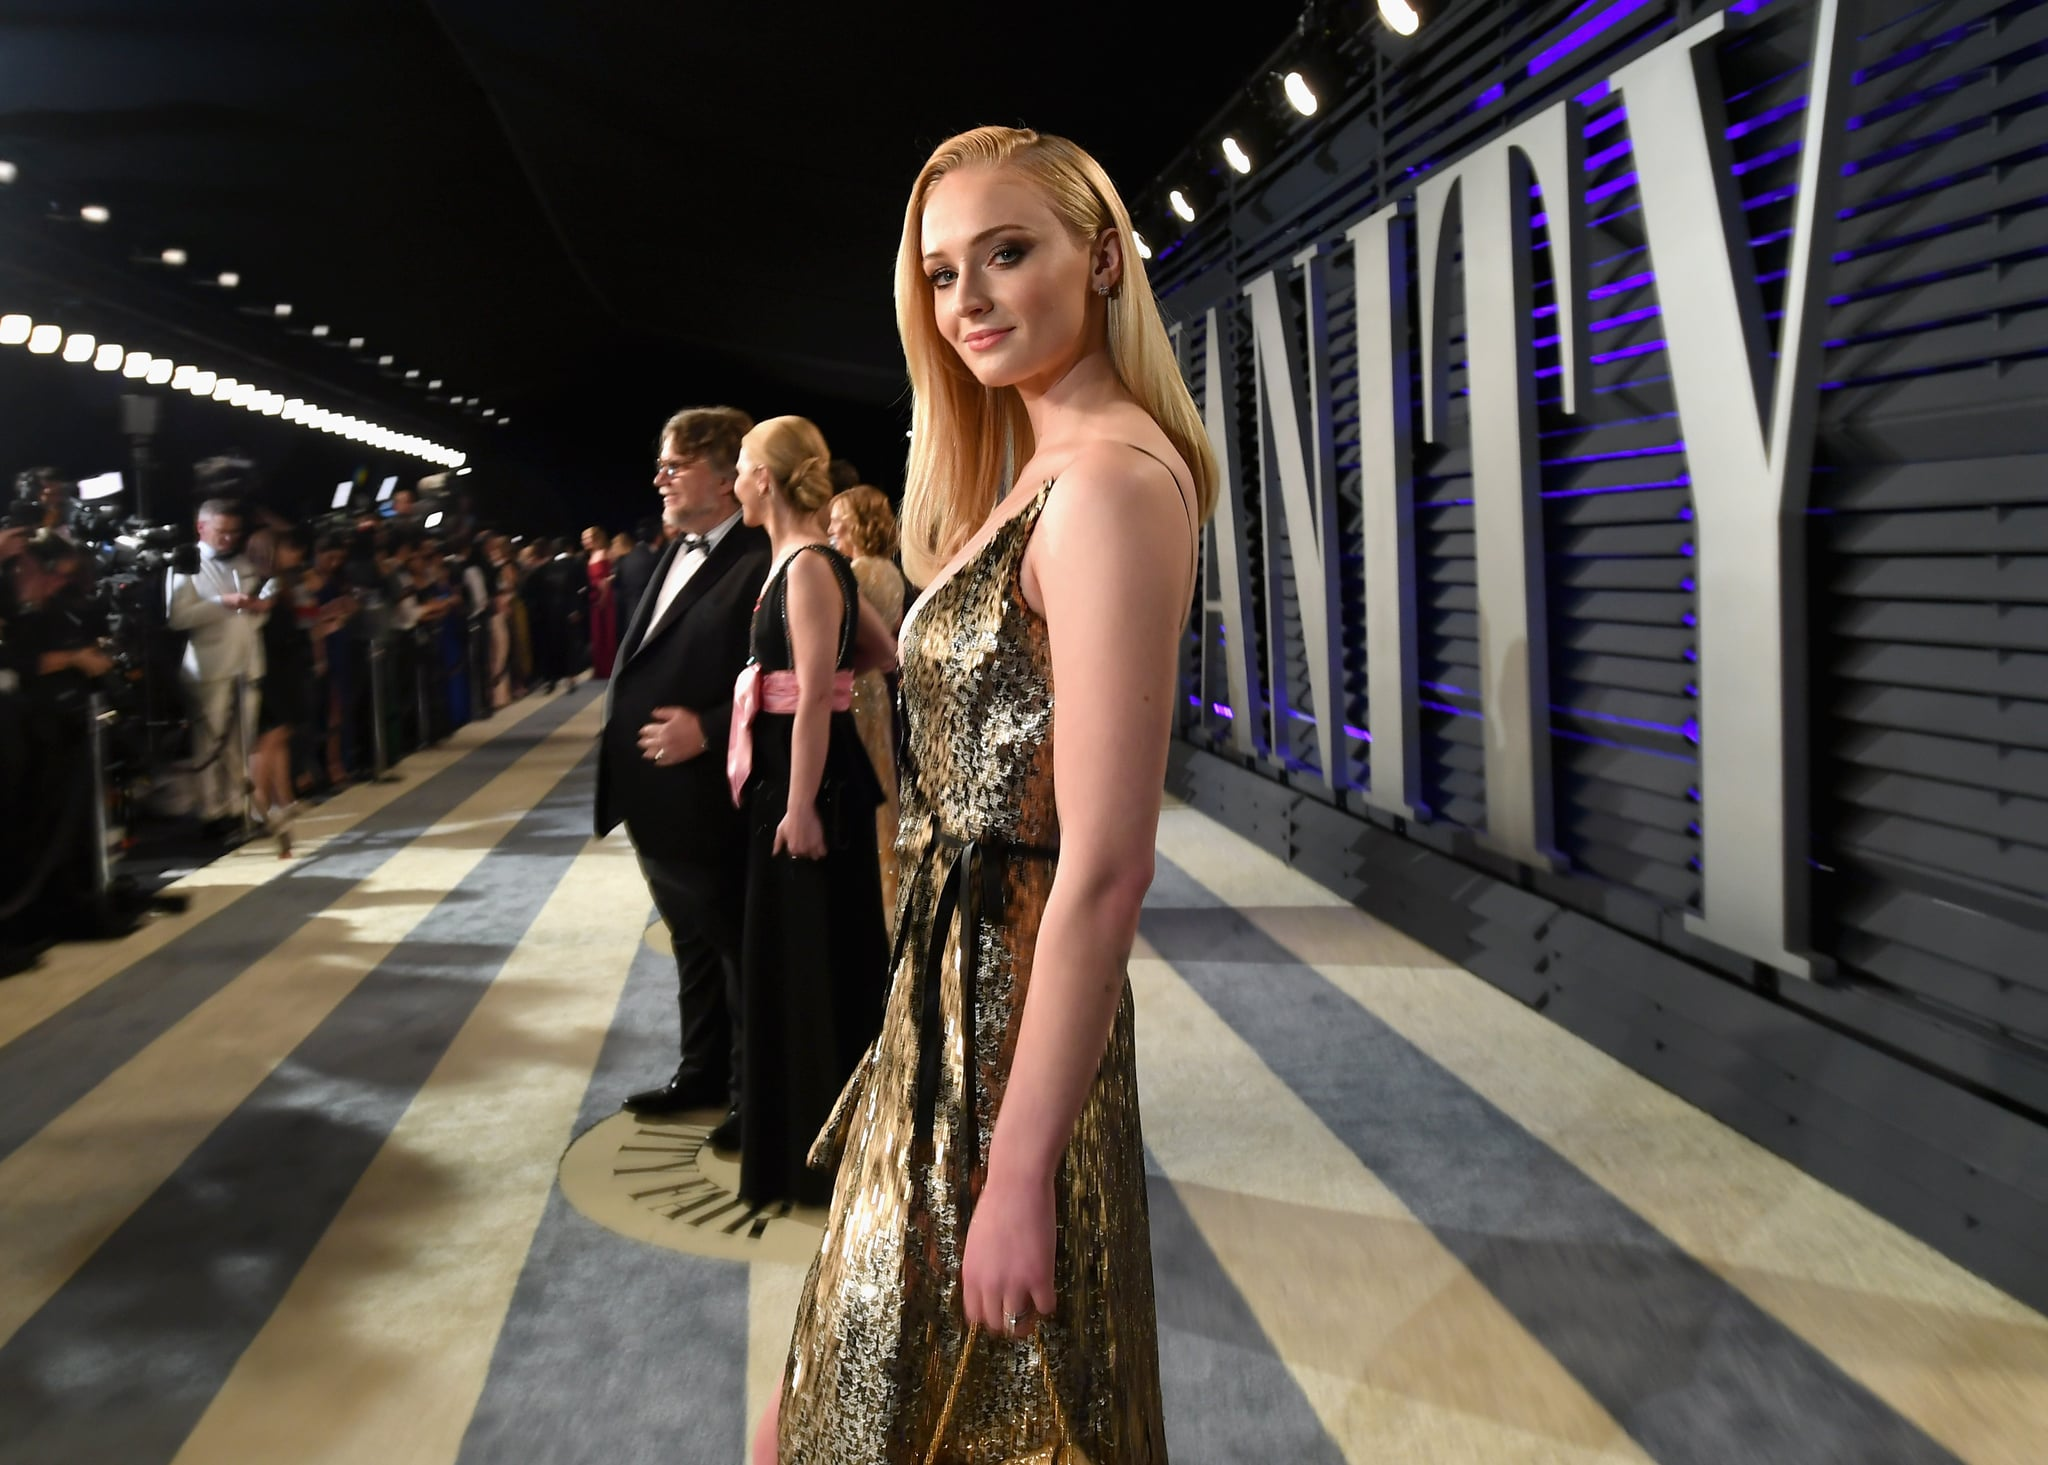 BEVERLY HILLS, CA - FEBRUARY 24:  Sophie Turner attends the 2019 Vanity Fair Oscar Party hosted by Radhika Jones at Wallis Annenberg Center for the Performing Arts on February 24, 2019 in Beverly Hills, California.  (Photo by Mike Coppola/VF19/Getty Images for VF)